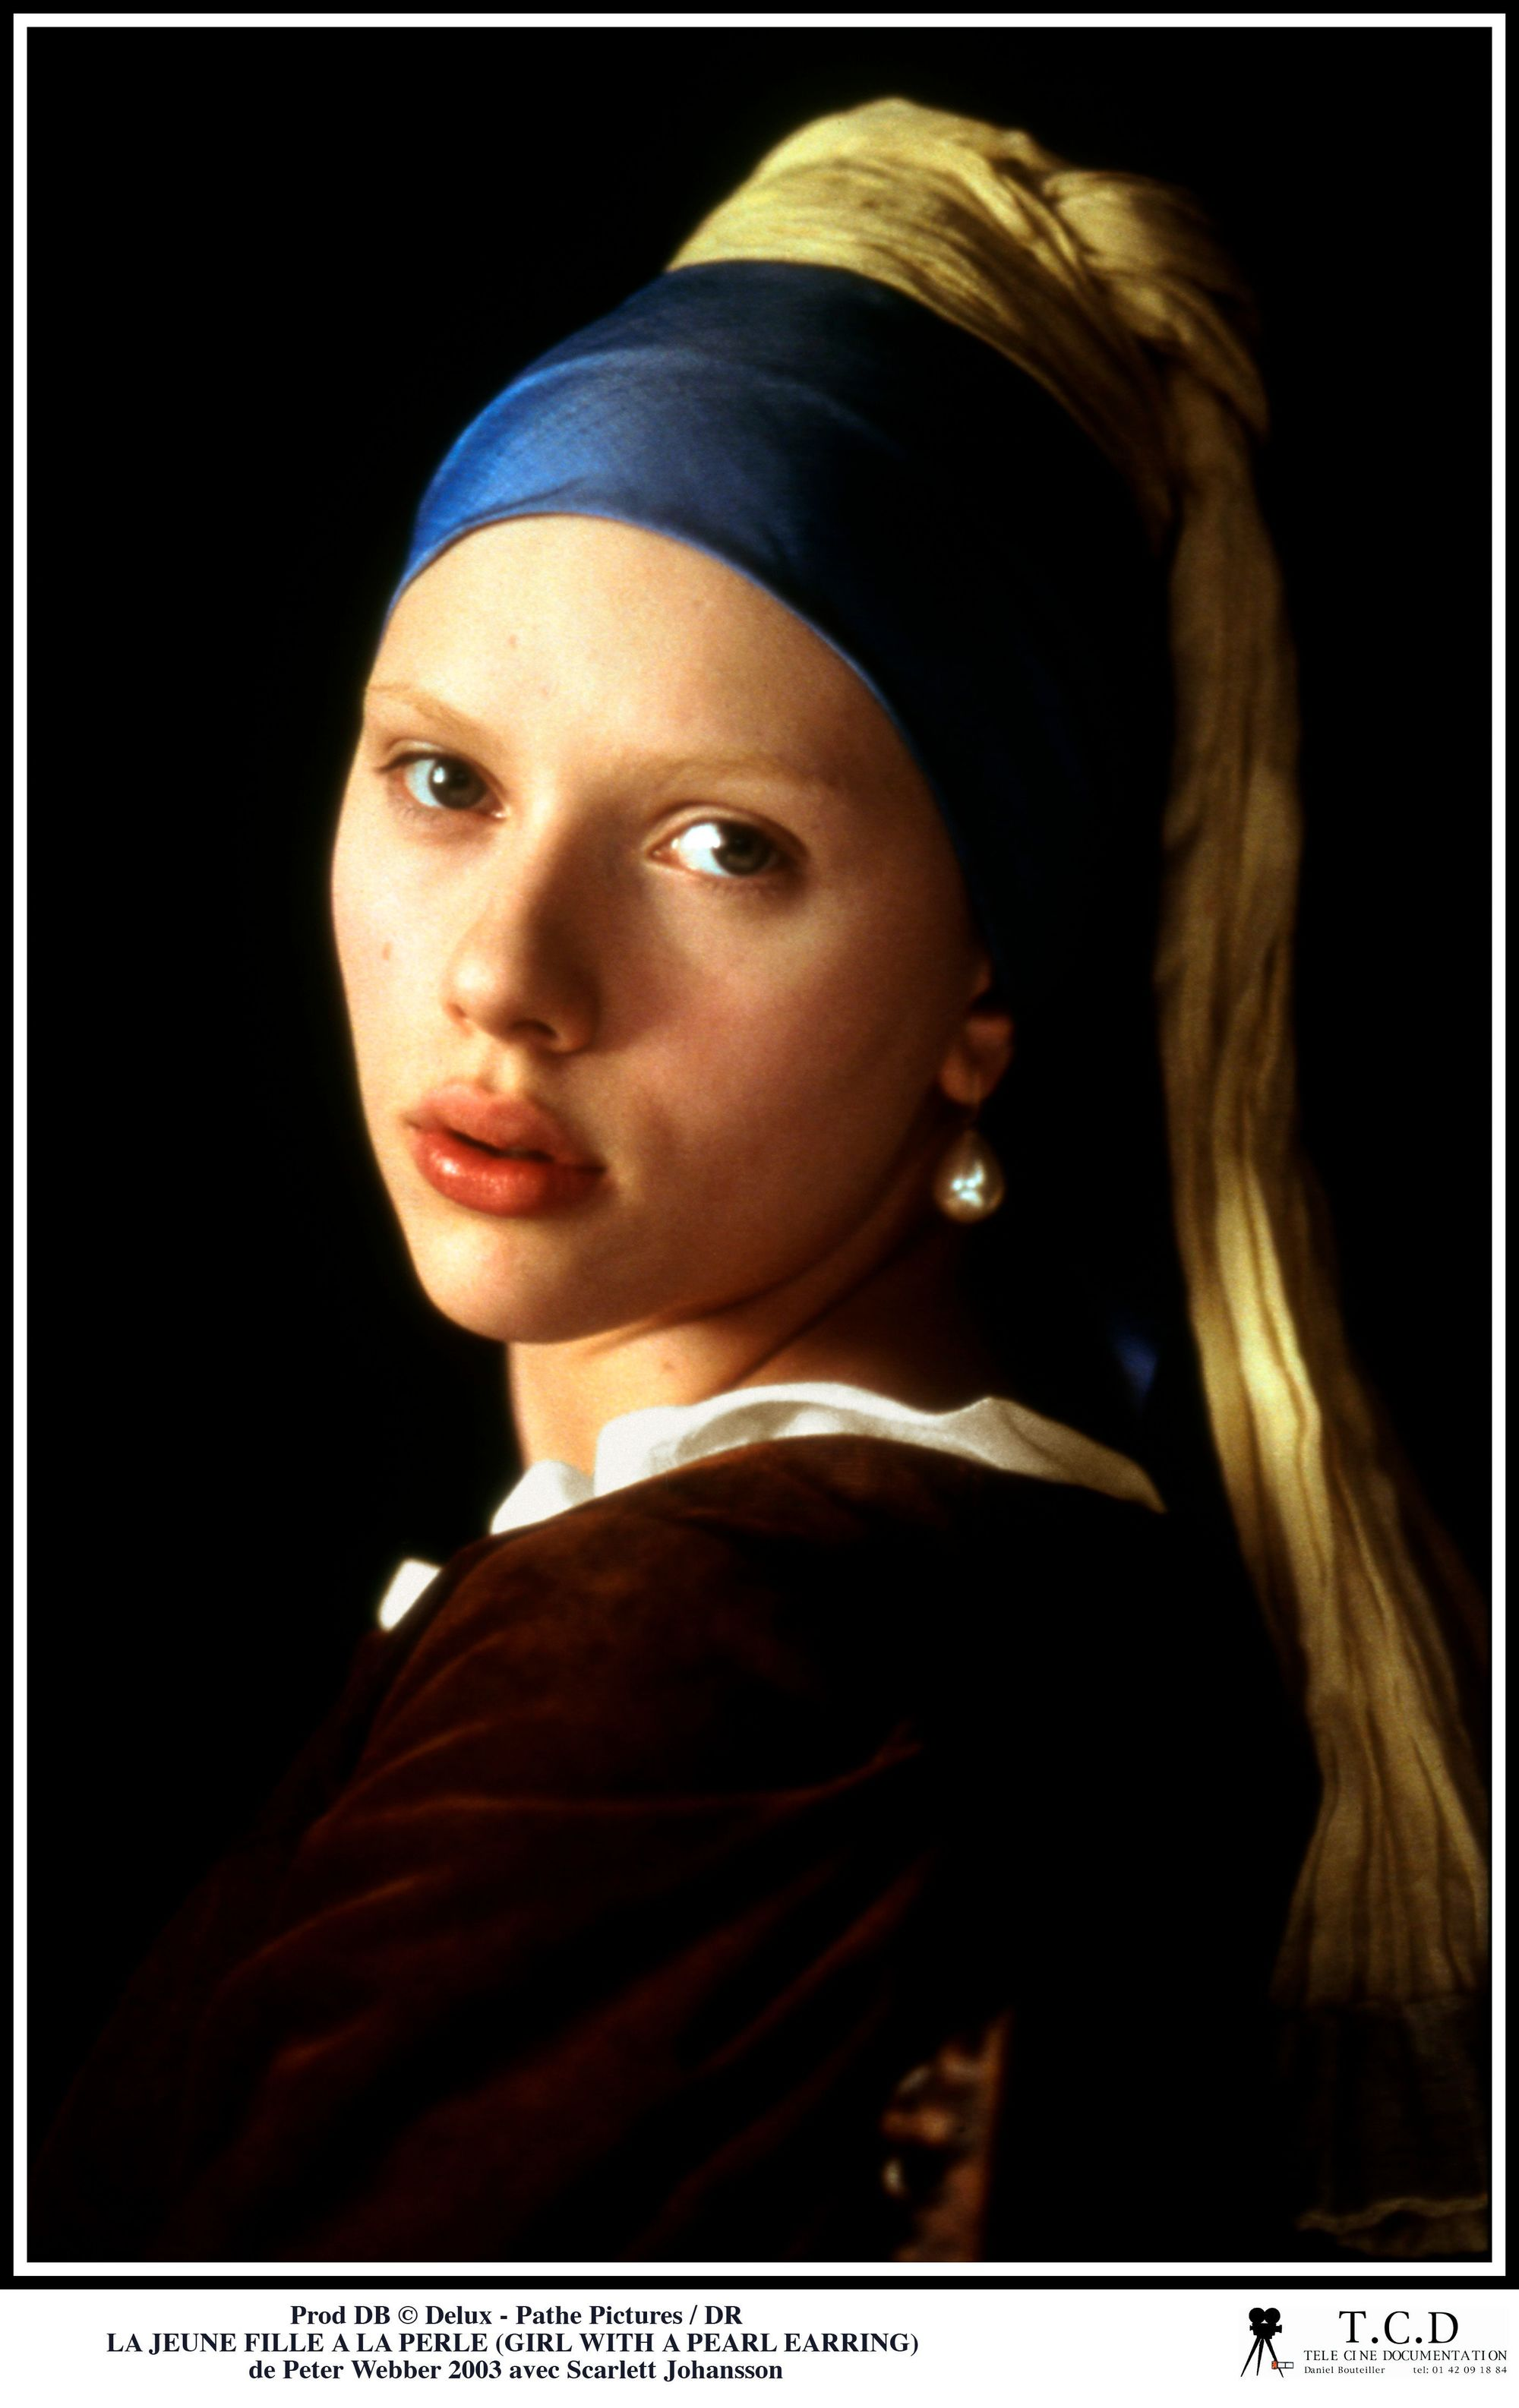 The Girl With A Pearl Earring.